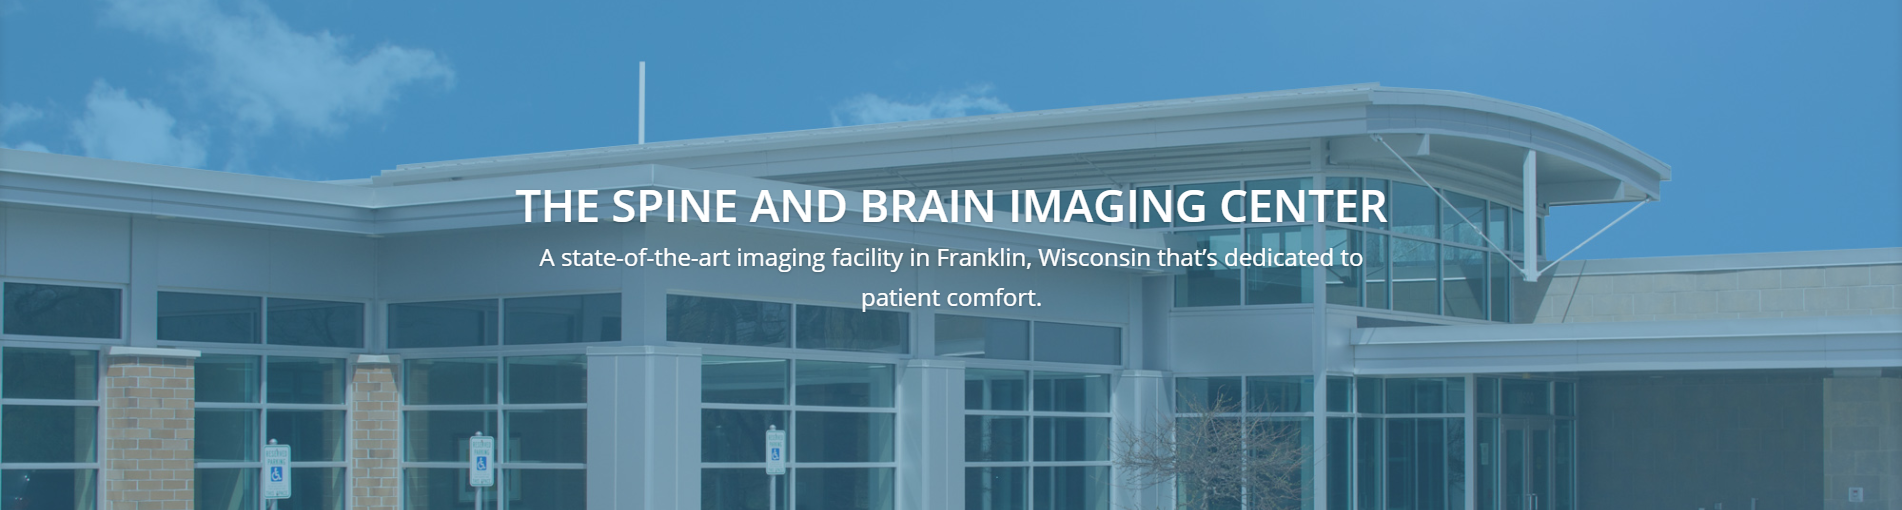 The exterior of The Spine and Brain Imaging Center